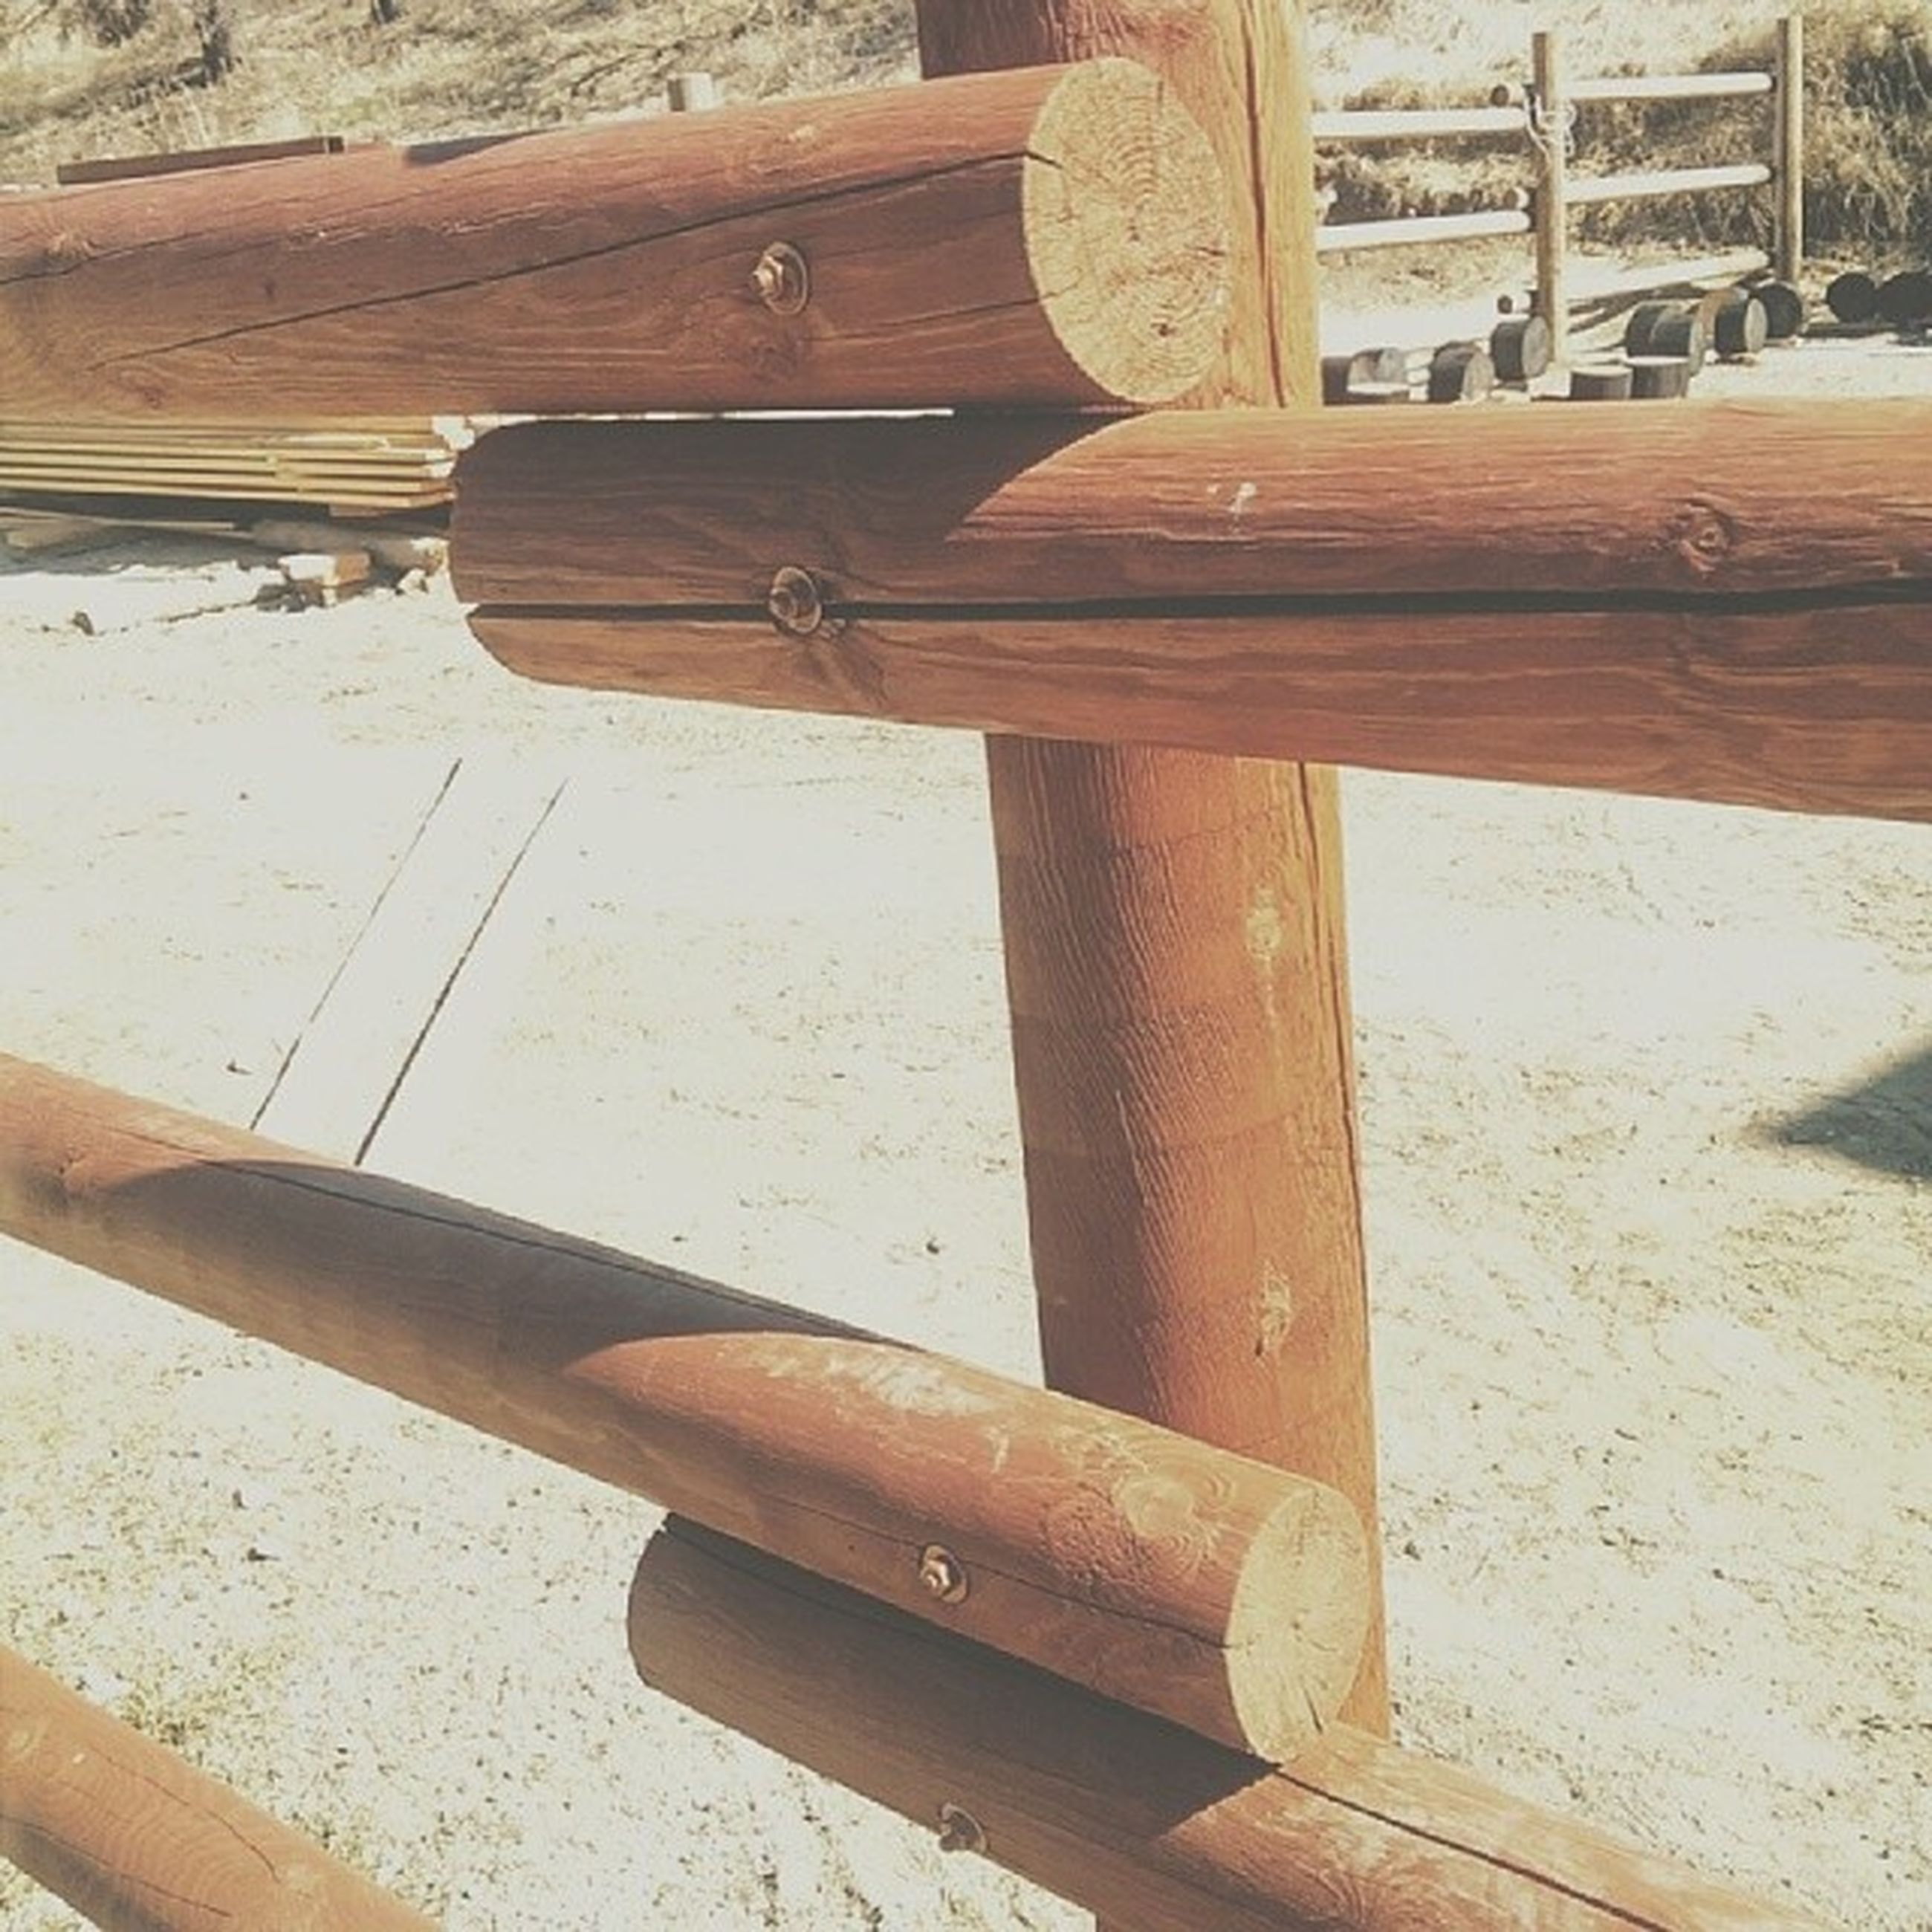 wood - material, wooden, wood, bench, sunlight, built structure, old, day, no people, close-up, outdoors, metal, shadow, plank, chair, high angle view, empty, architecture, absence, brown